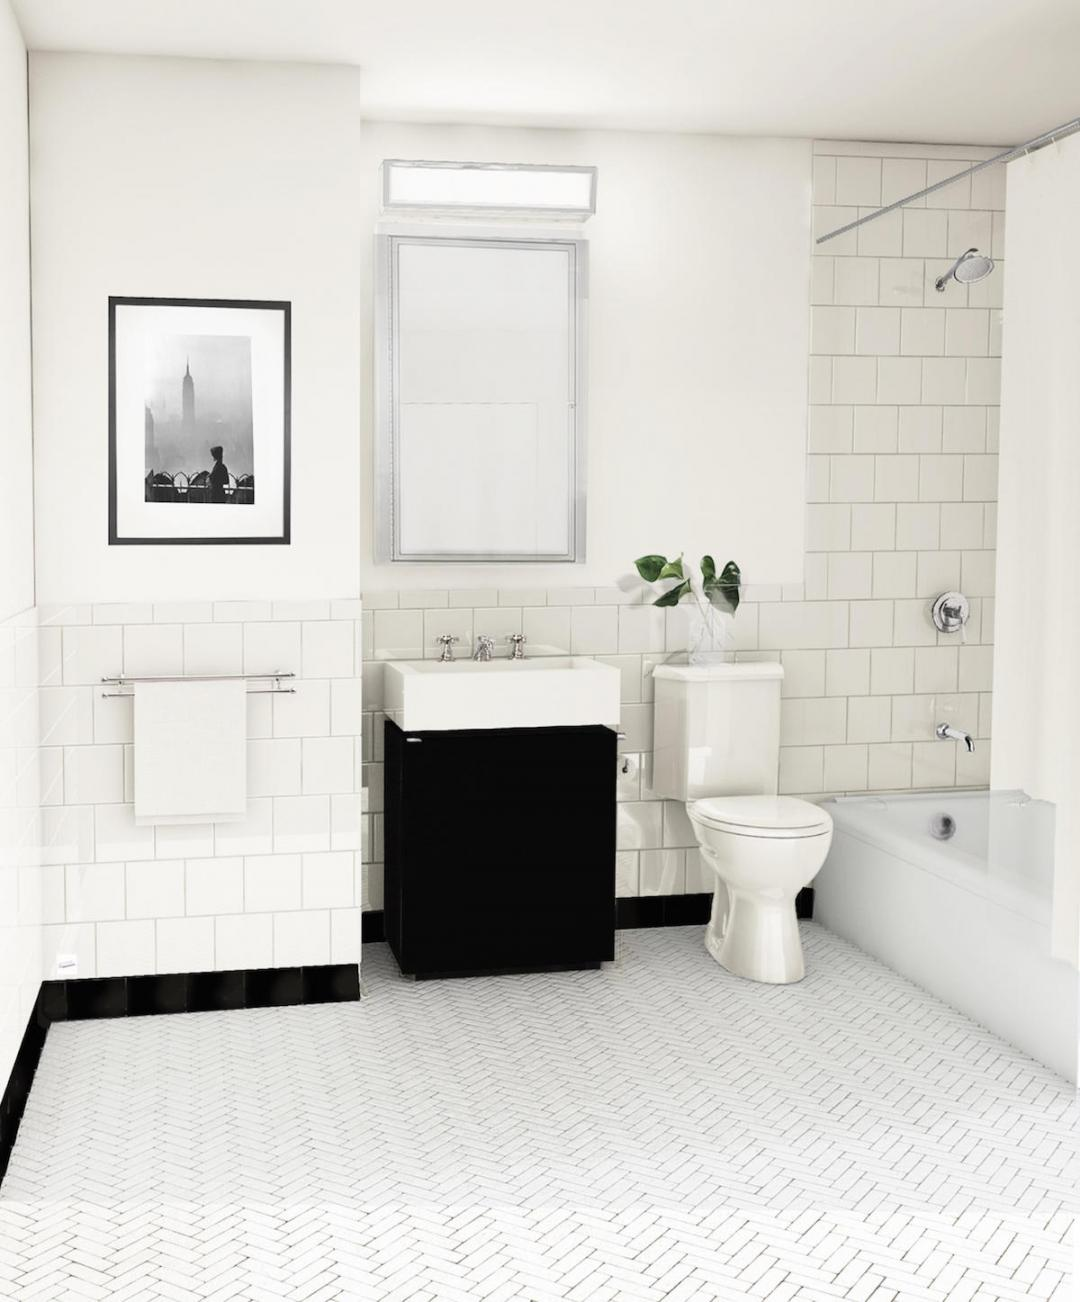 Bathroom at Two Bridges in NYC - Apartments for rent